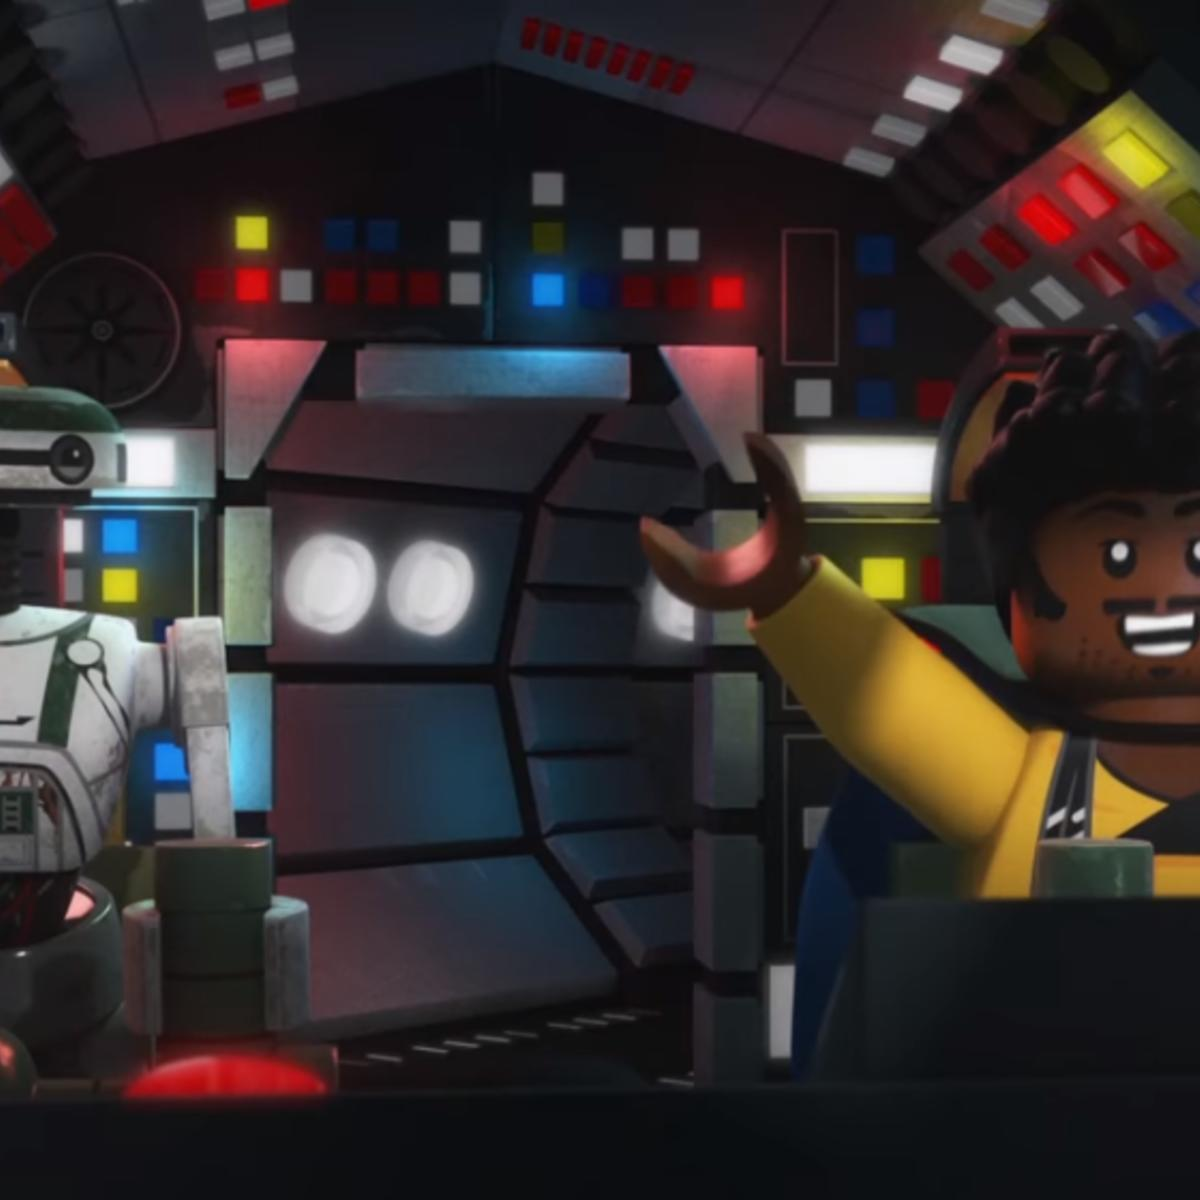 Lego Star Wars: All Stars brings every era's characters for animated fun